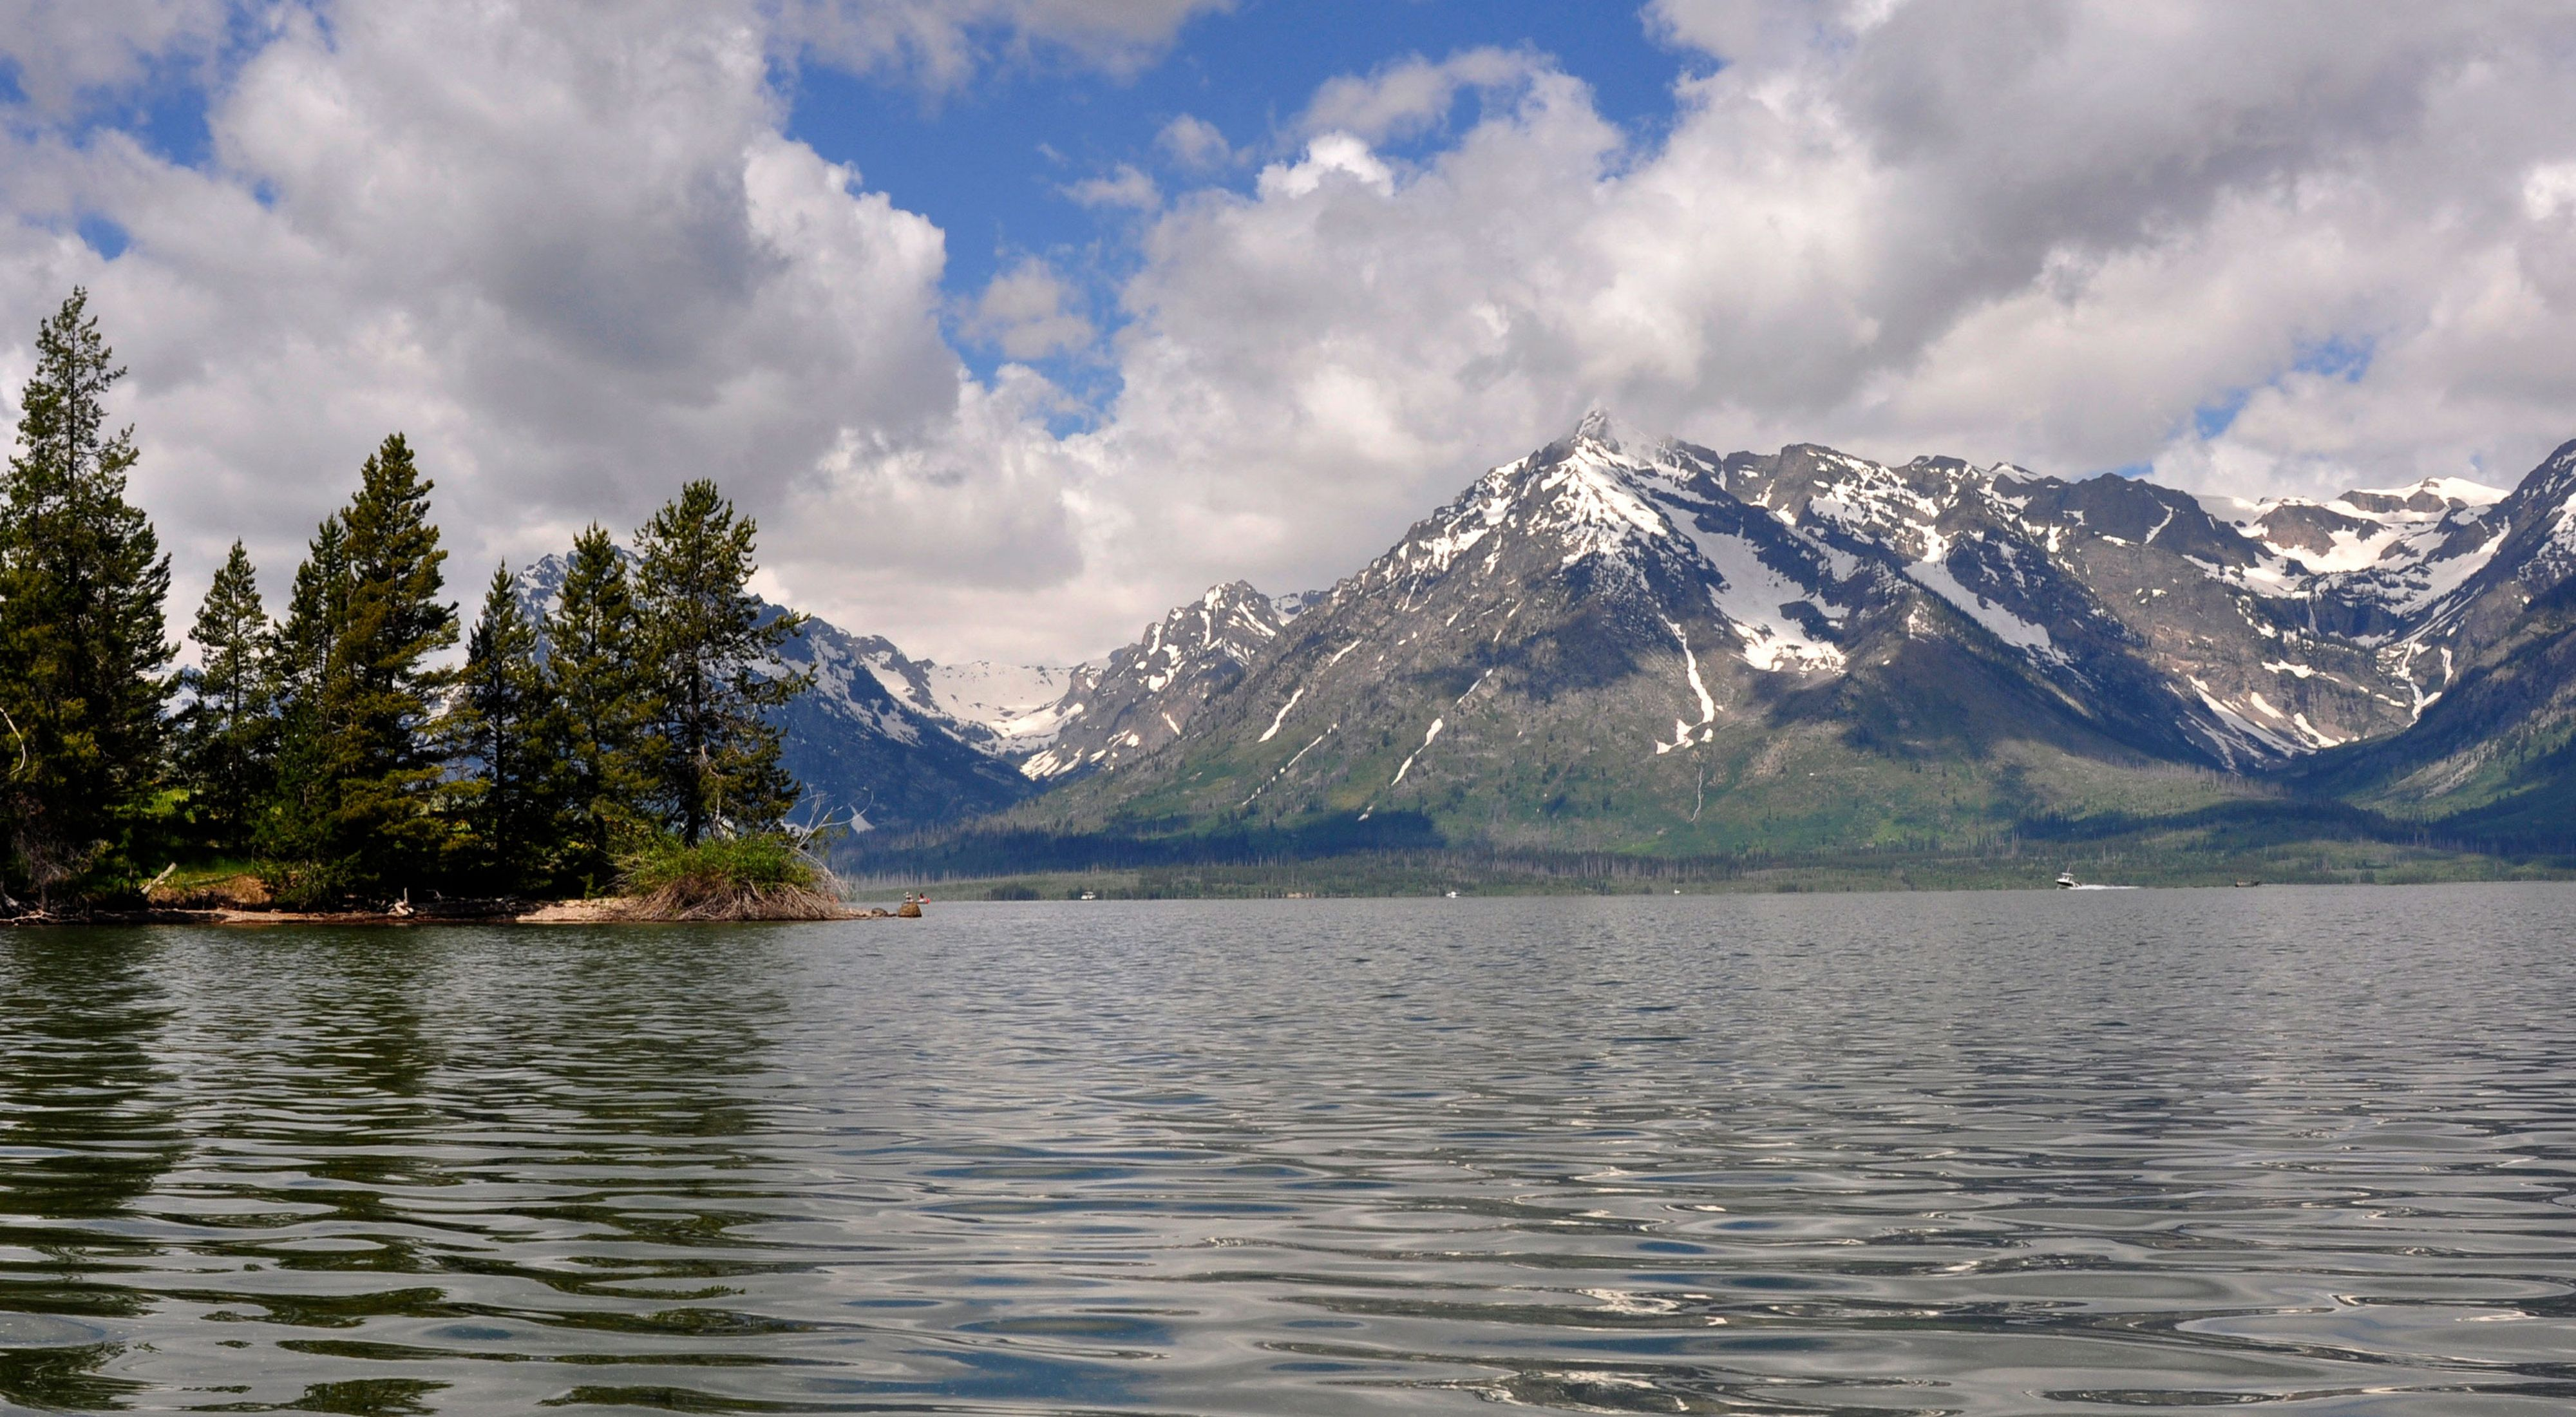 Jackson Lake in Grand Teton National Park.